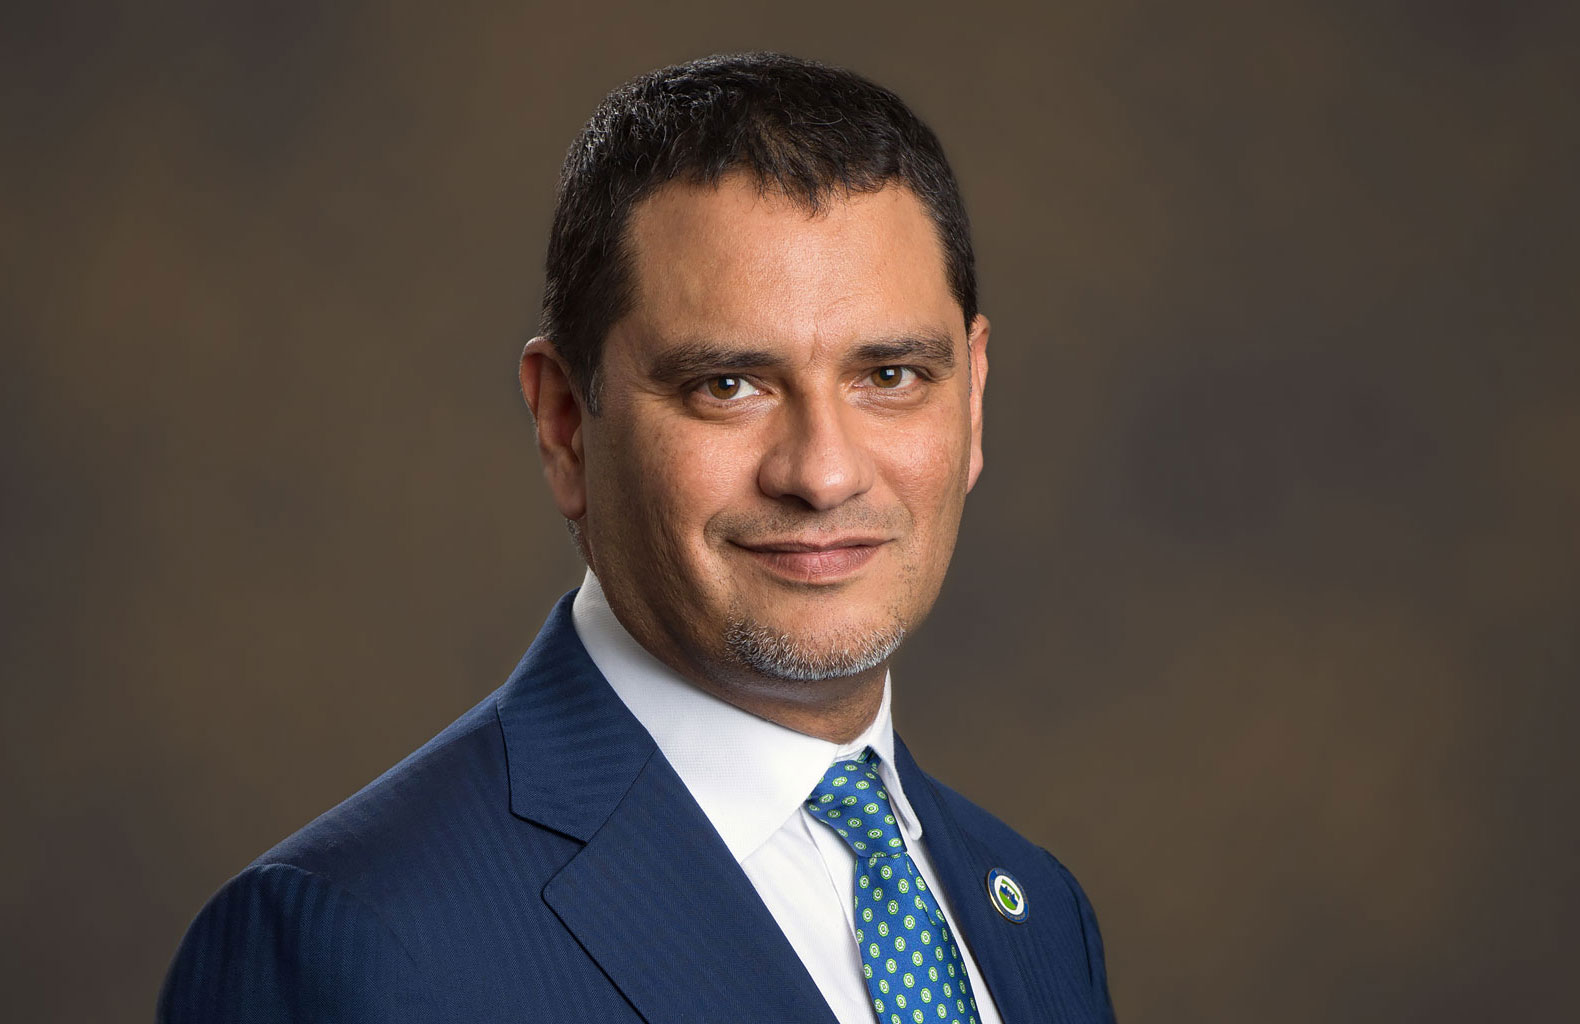 Lehman College President Jose Luis Cruz, The City University of New York